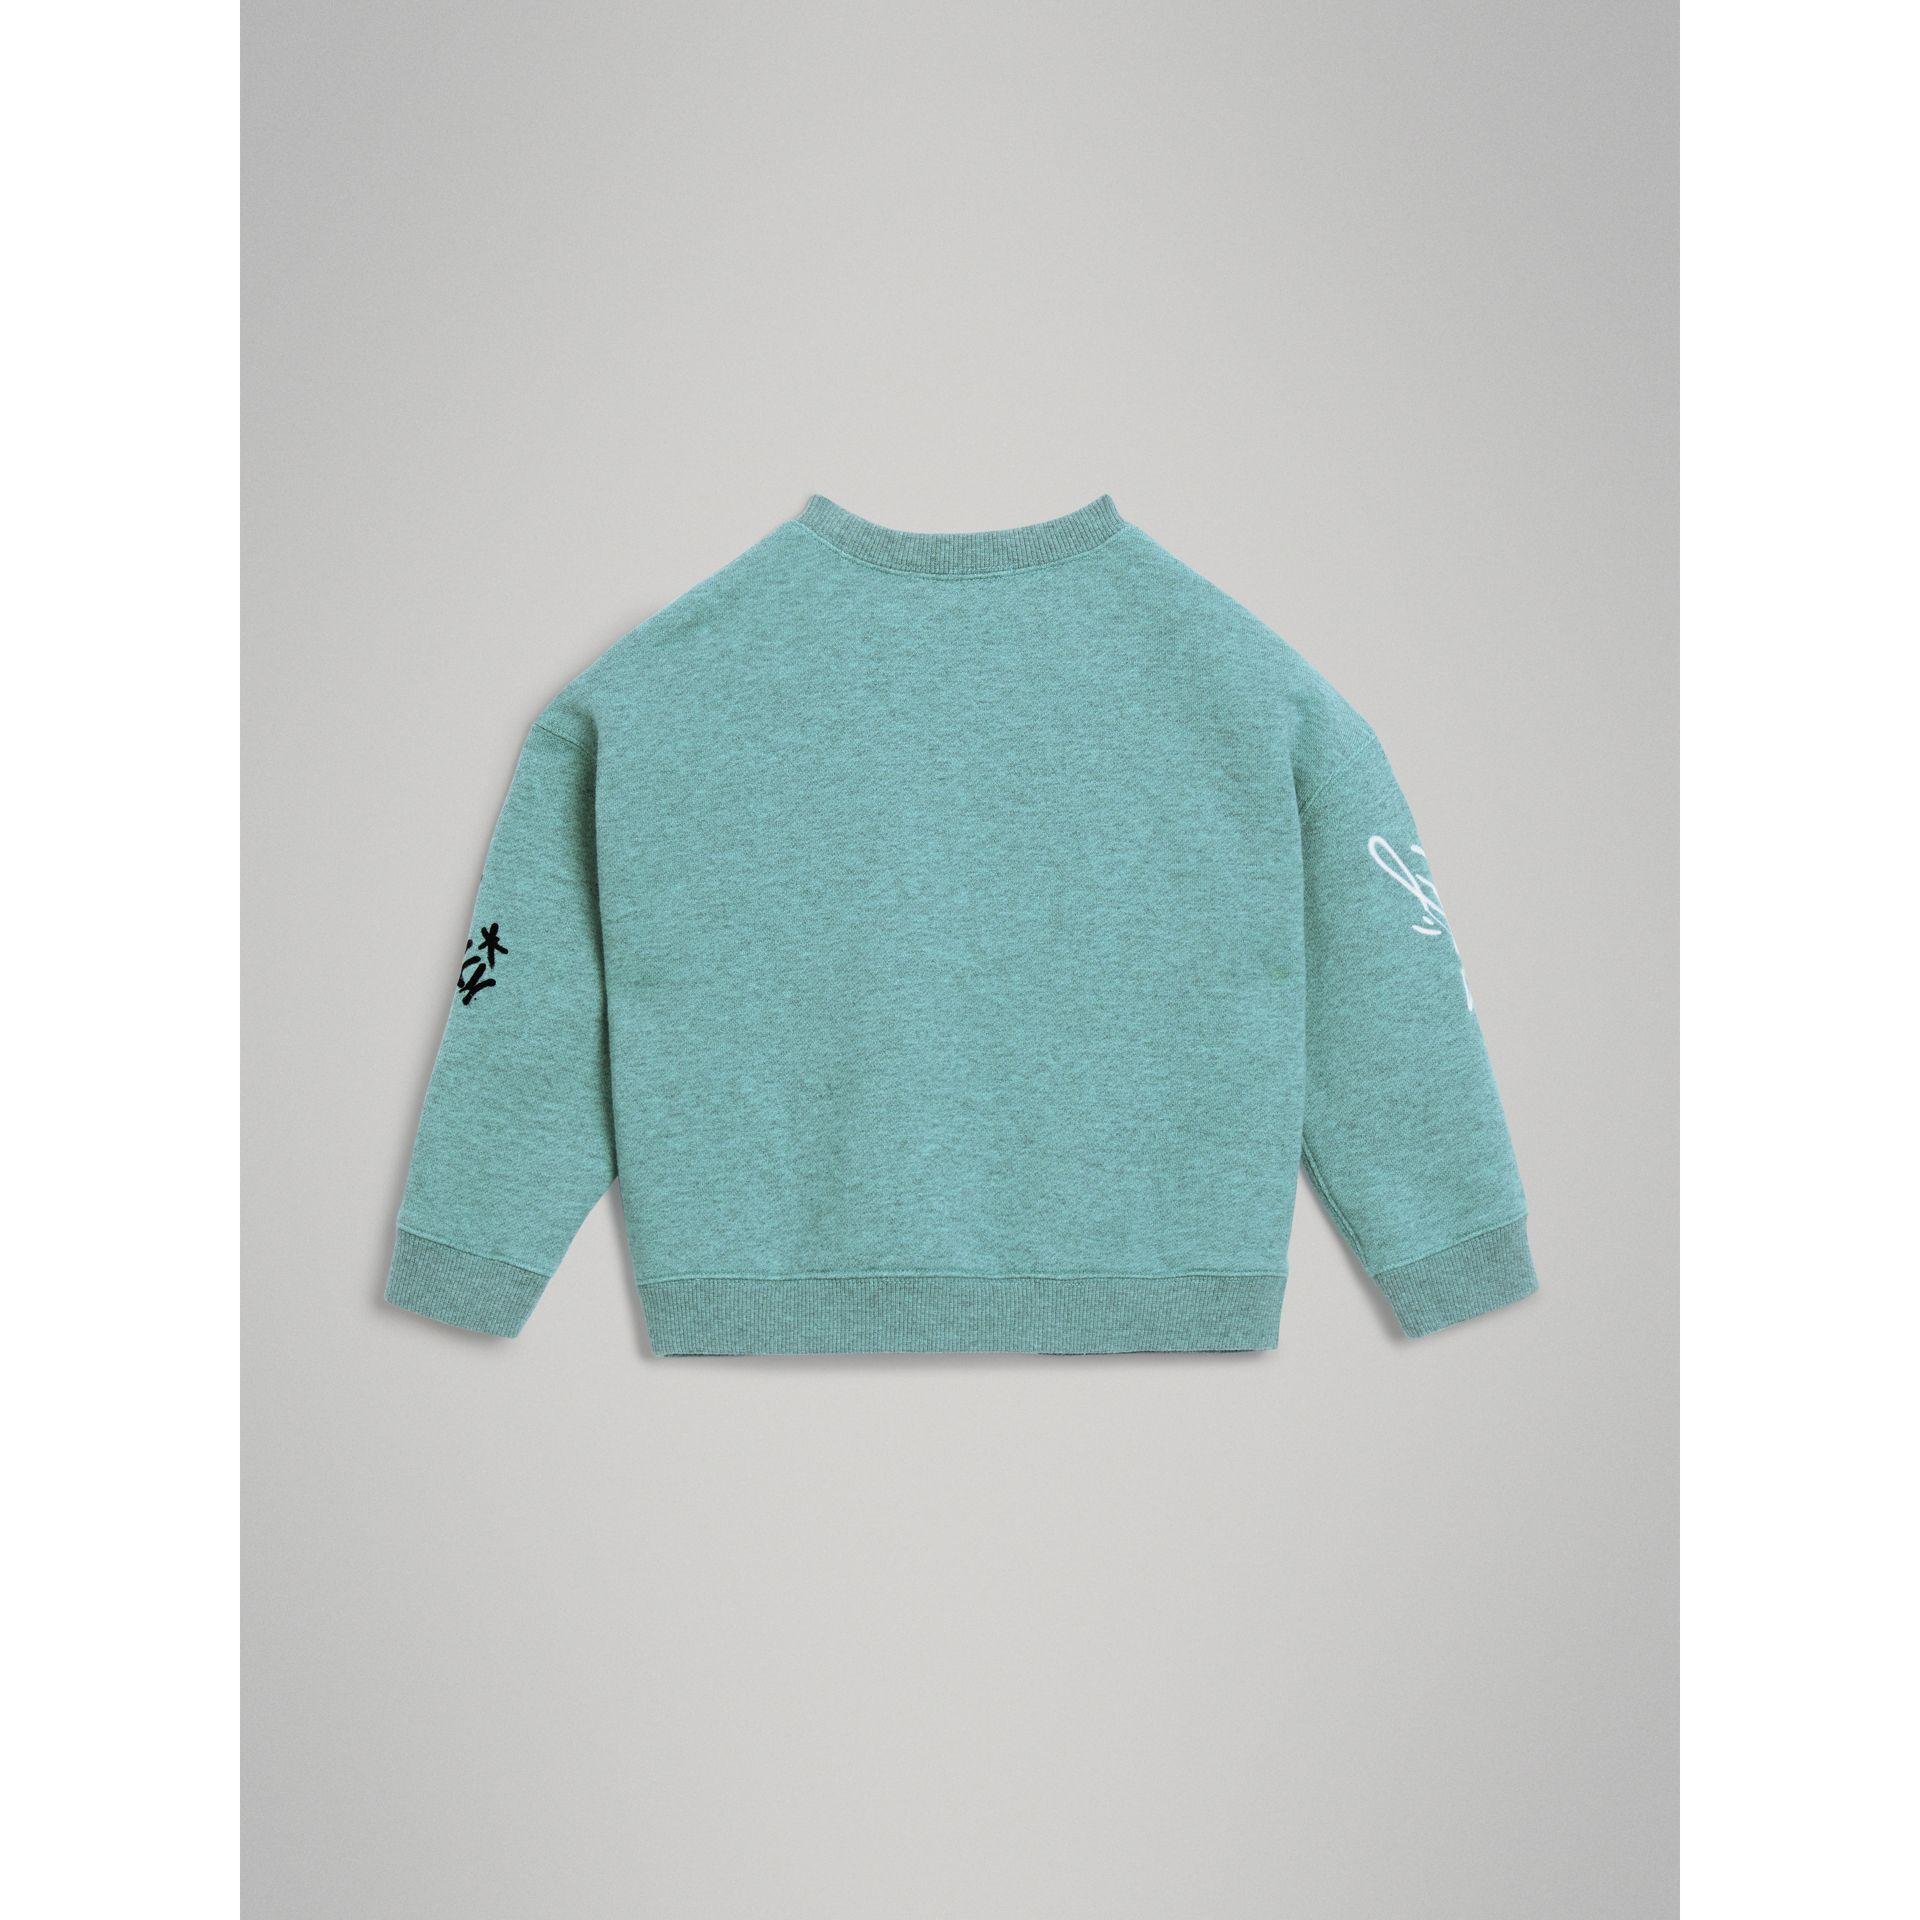 Forever is Now Print Cotton Sweatshirt in Turquoise | Burberry United States - gallery image 3